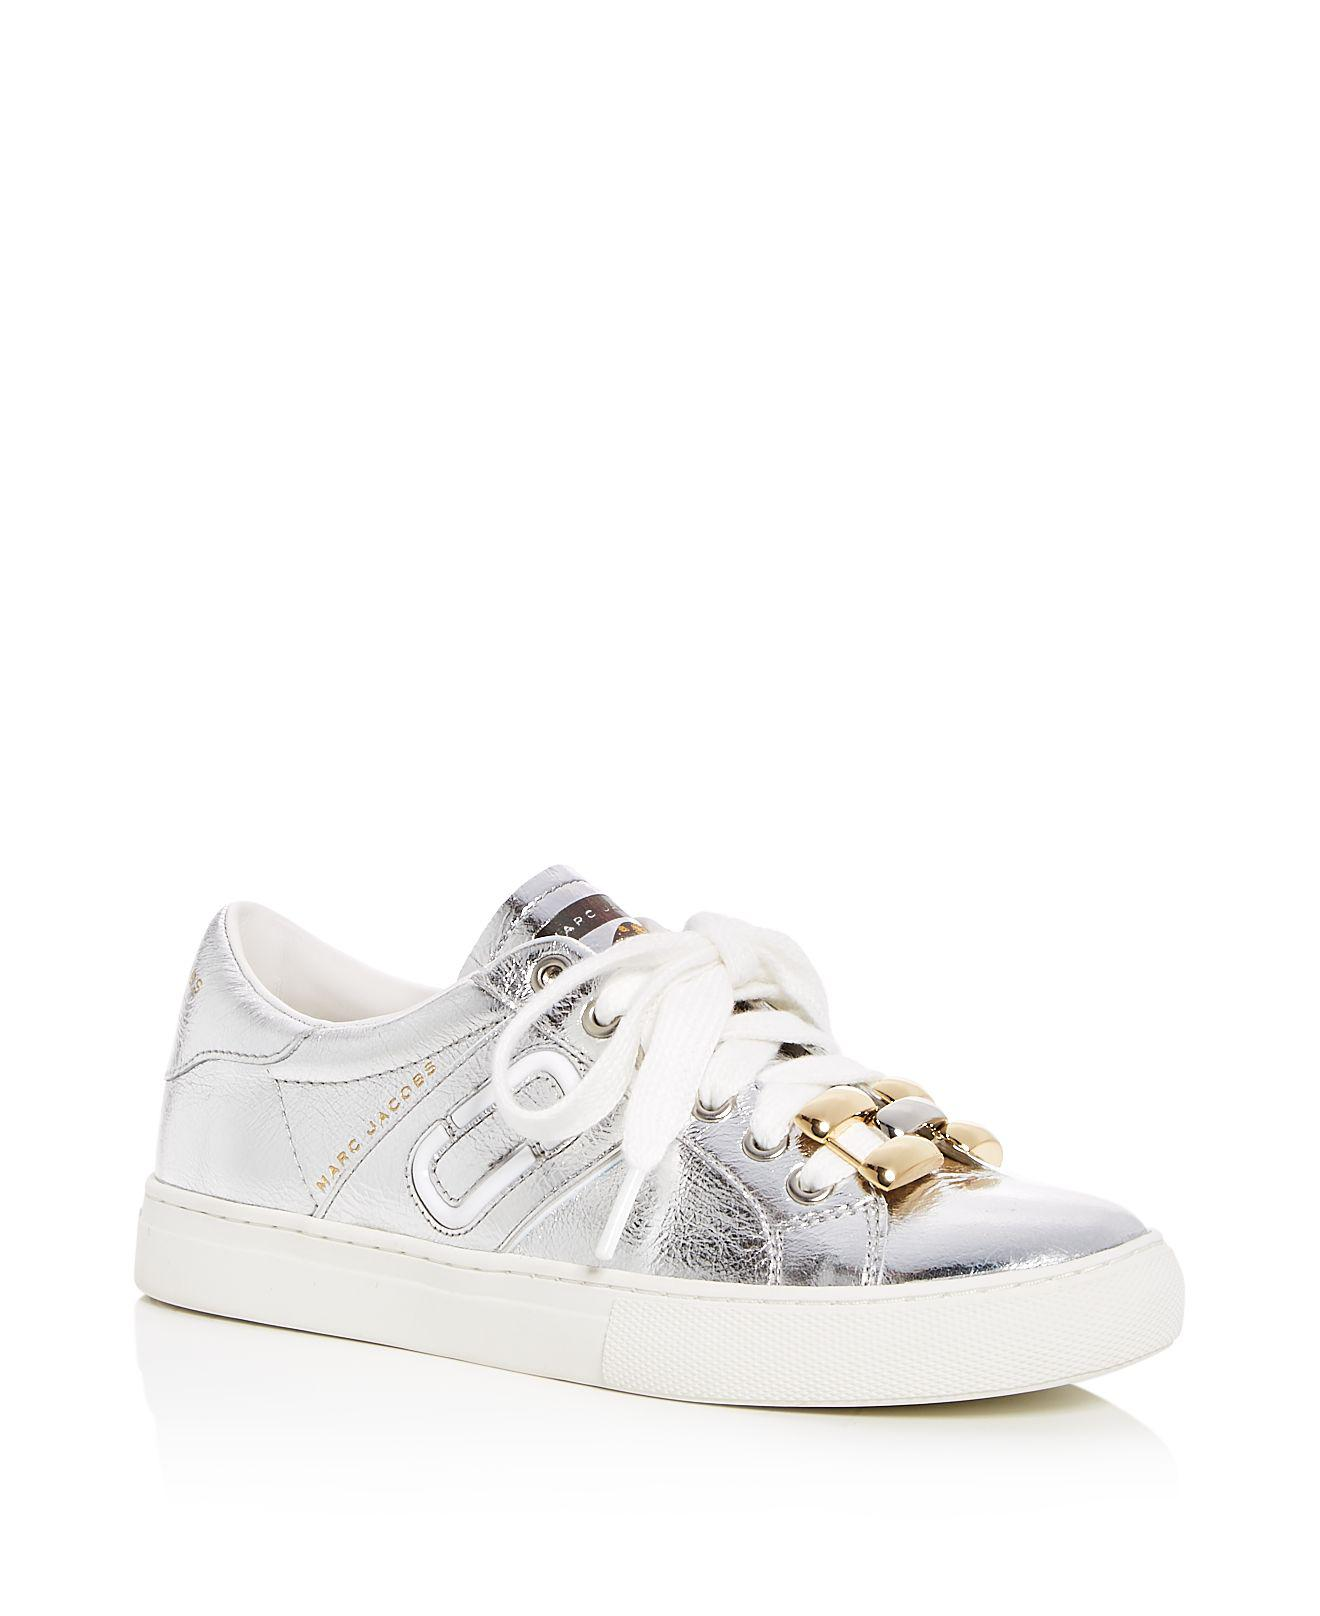 Marc Jacobs Women's Empire Love Embellished Leather Lace Up Sneakers Outlet Websites Clearance For Sale Free Shipping Cheapest Browse Cheap Price gHe28